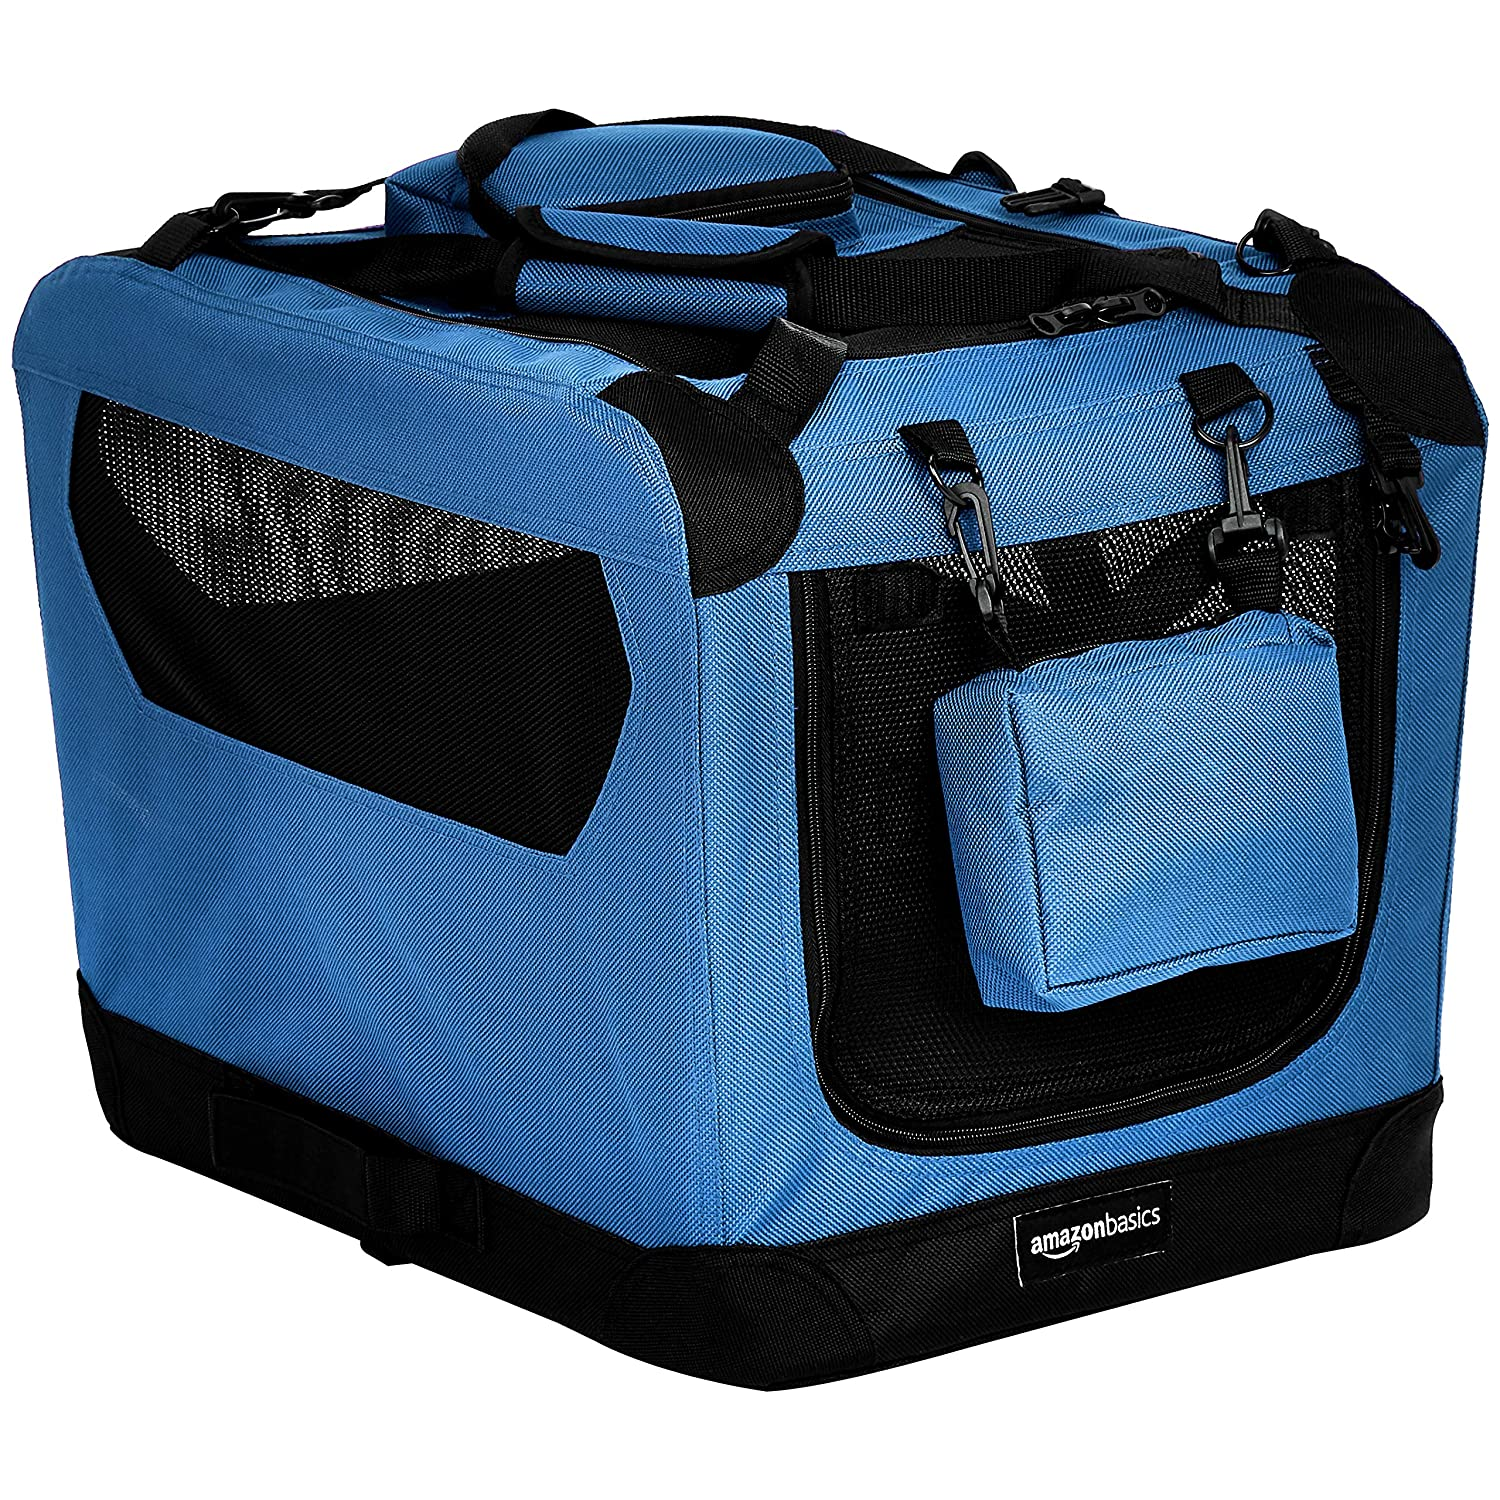 blueE 21\ blueE 21\ AmazonBasics Premium Folding Portable Soft Pet Crate 21', bluee